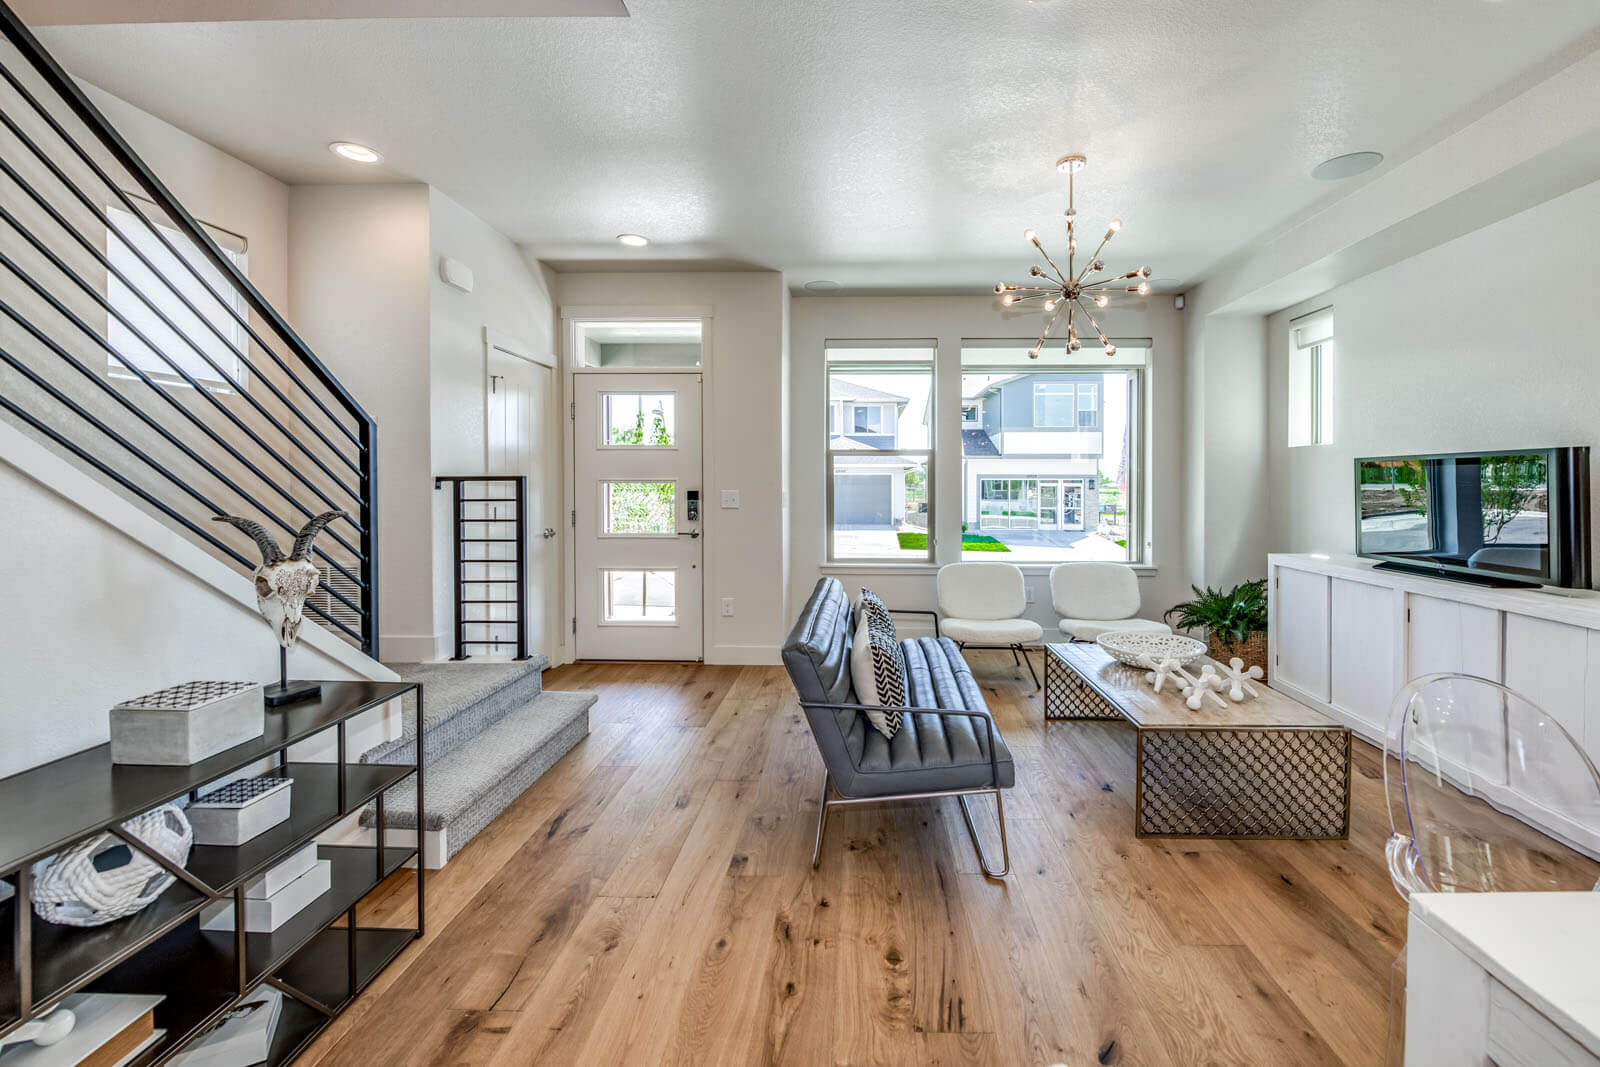 New Denver  Model Home Colette in Westminster Station, located at 6945 Canosa St, Denver Built By Cardel Homes Denver